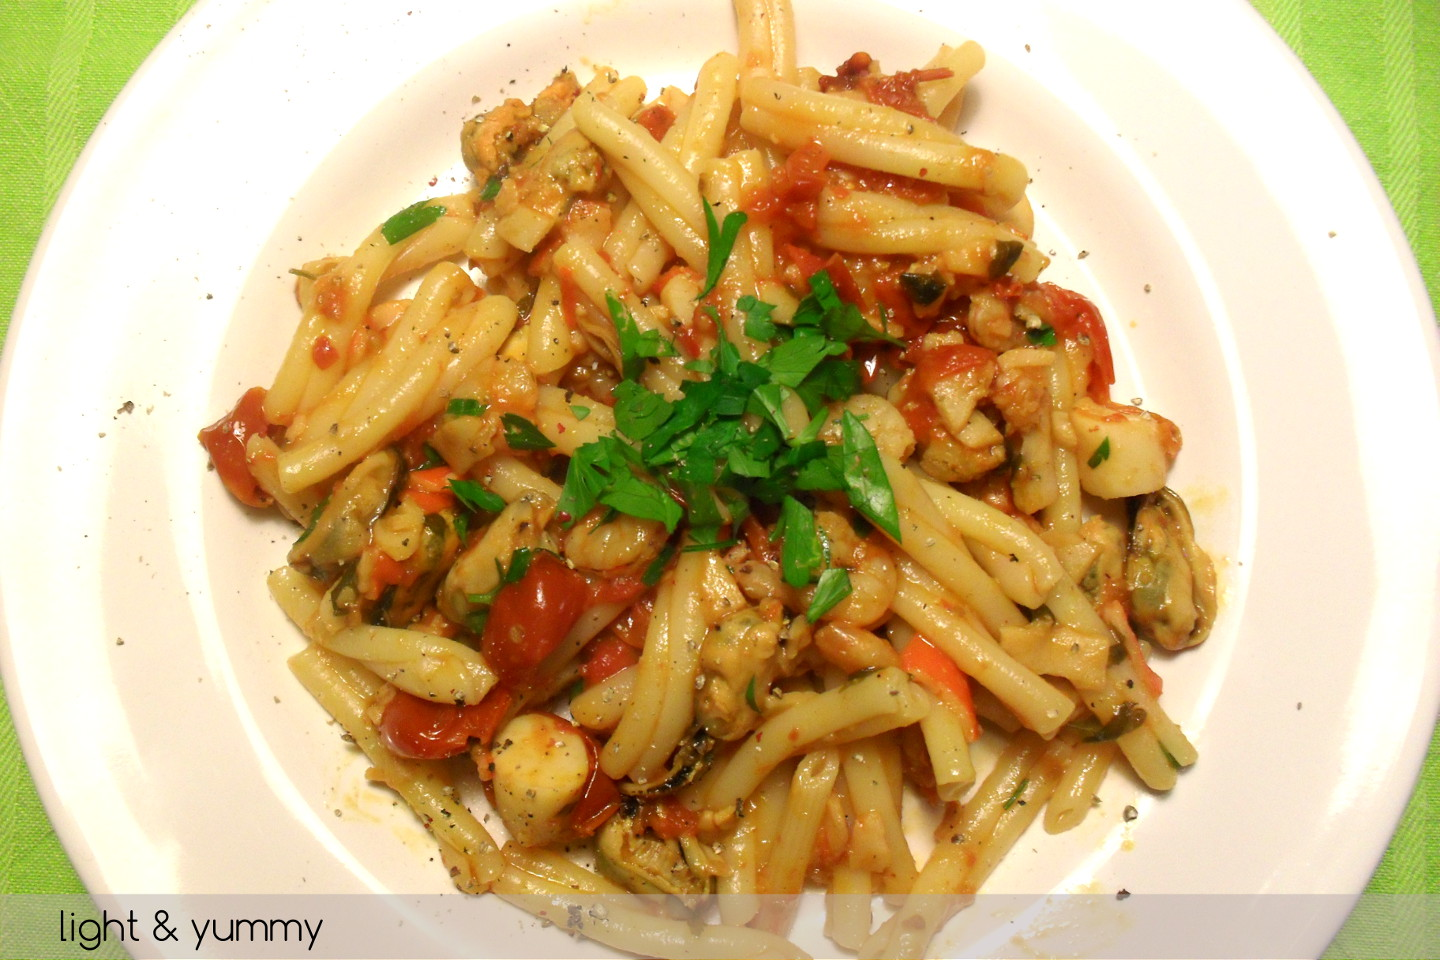 Pasta with frozen seafood, quick recipe - light & yummy